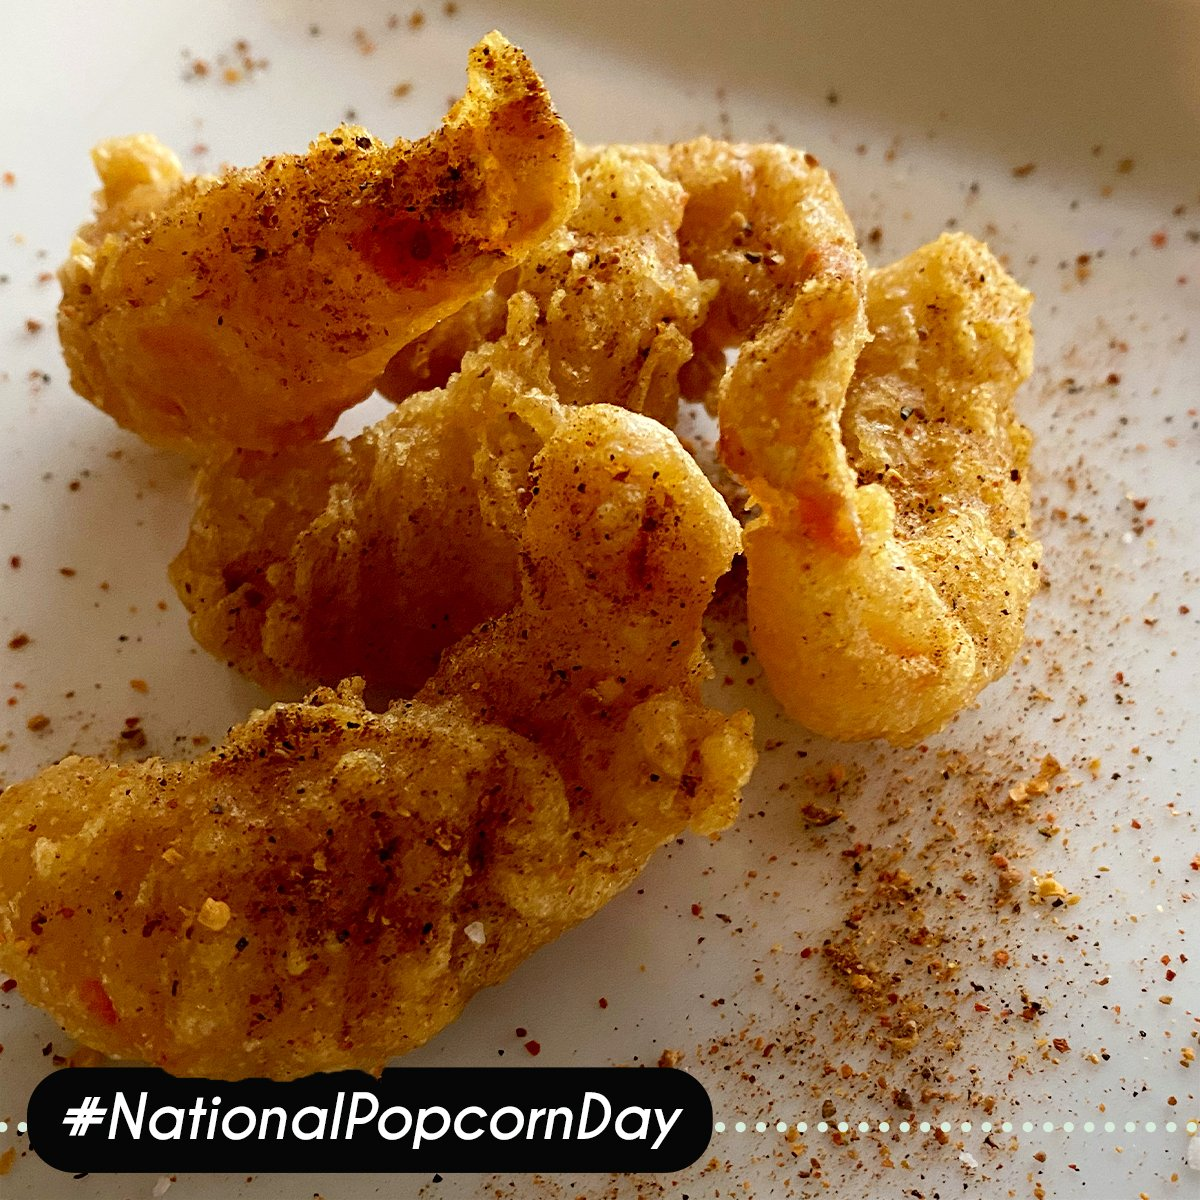 Happy National Popcorn Day!  We're taking a non-traditional approach to the holiday and celebrating with our Vegan Popcorn Shrimp 🍤 Celebrate with us today!    #nationalpopcornday #popcornshrimp #stlfood #popcorn